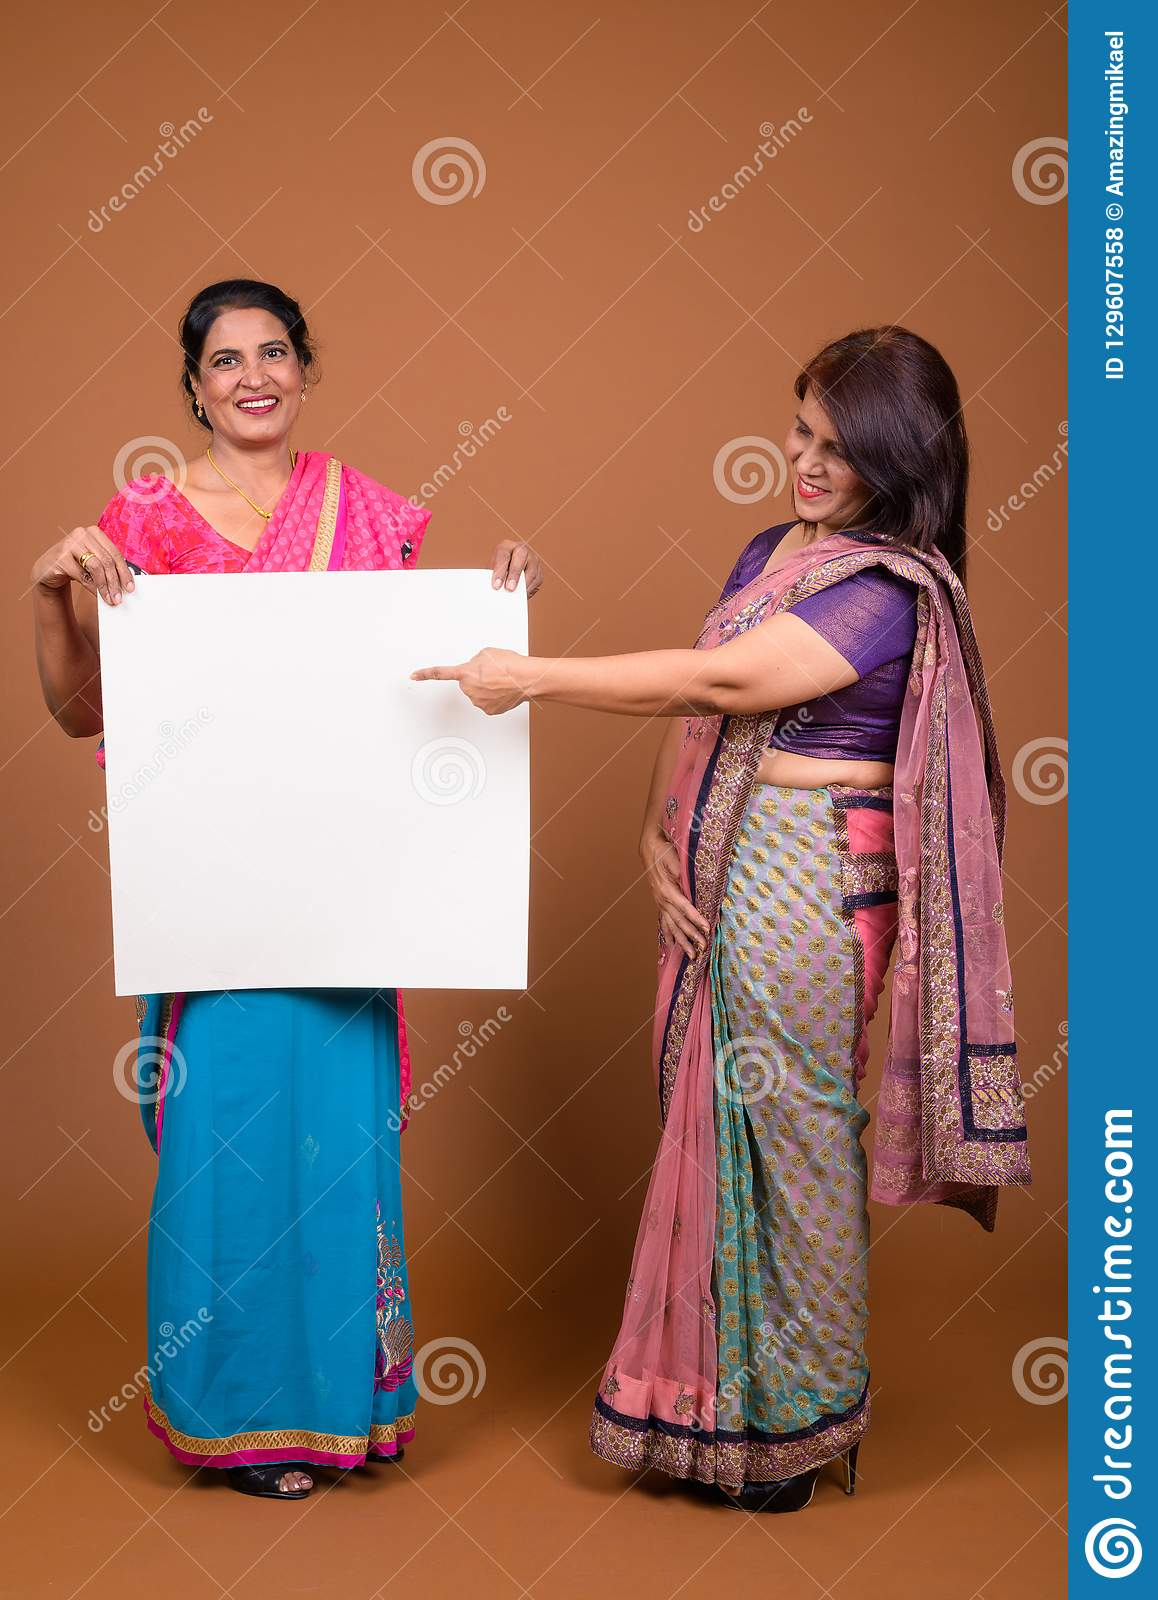 Studio shot of two mature Indian women wearing Sari Indian traditional  clothes together against brown background